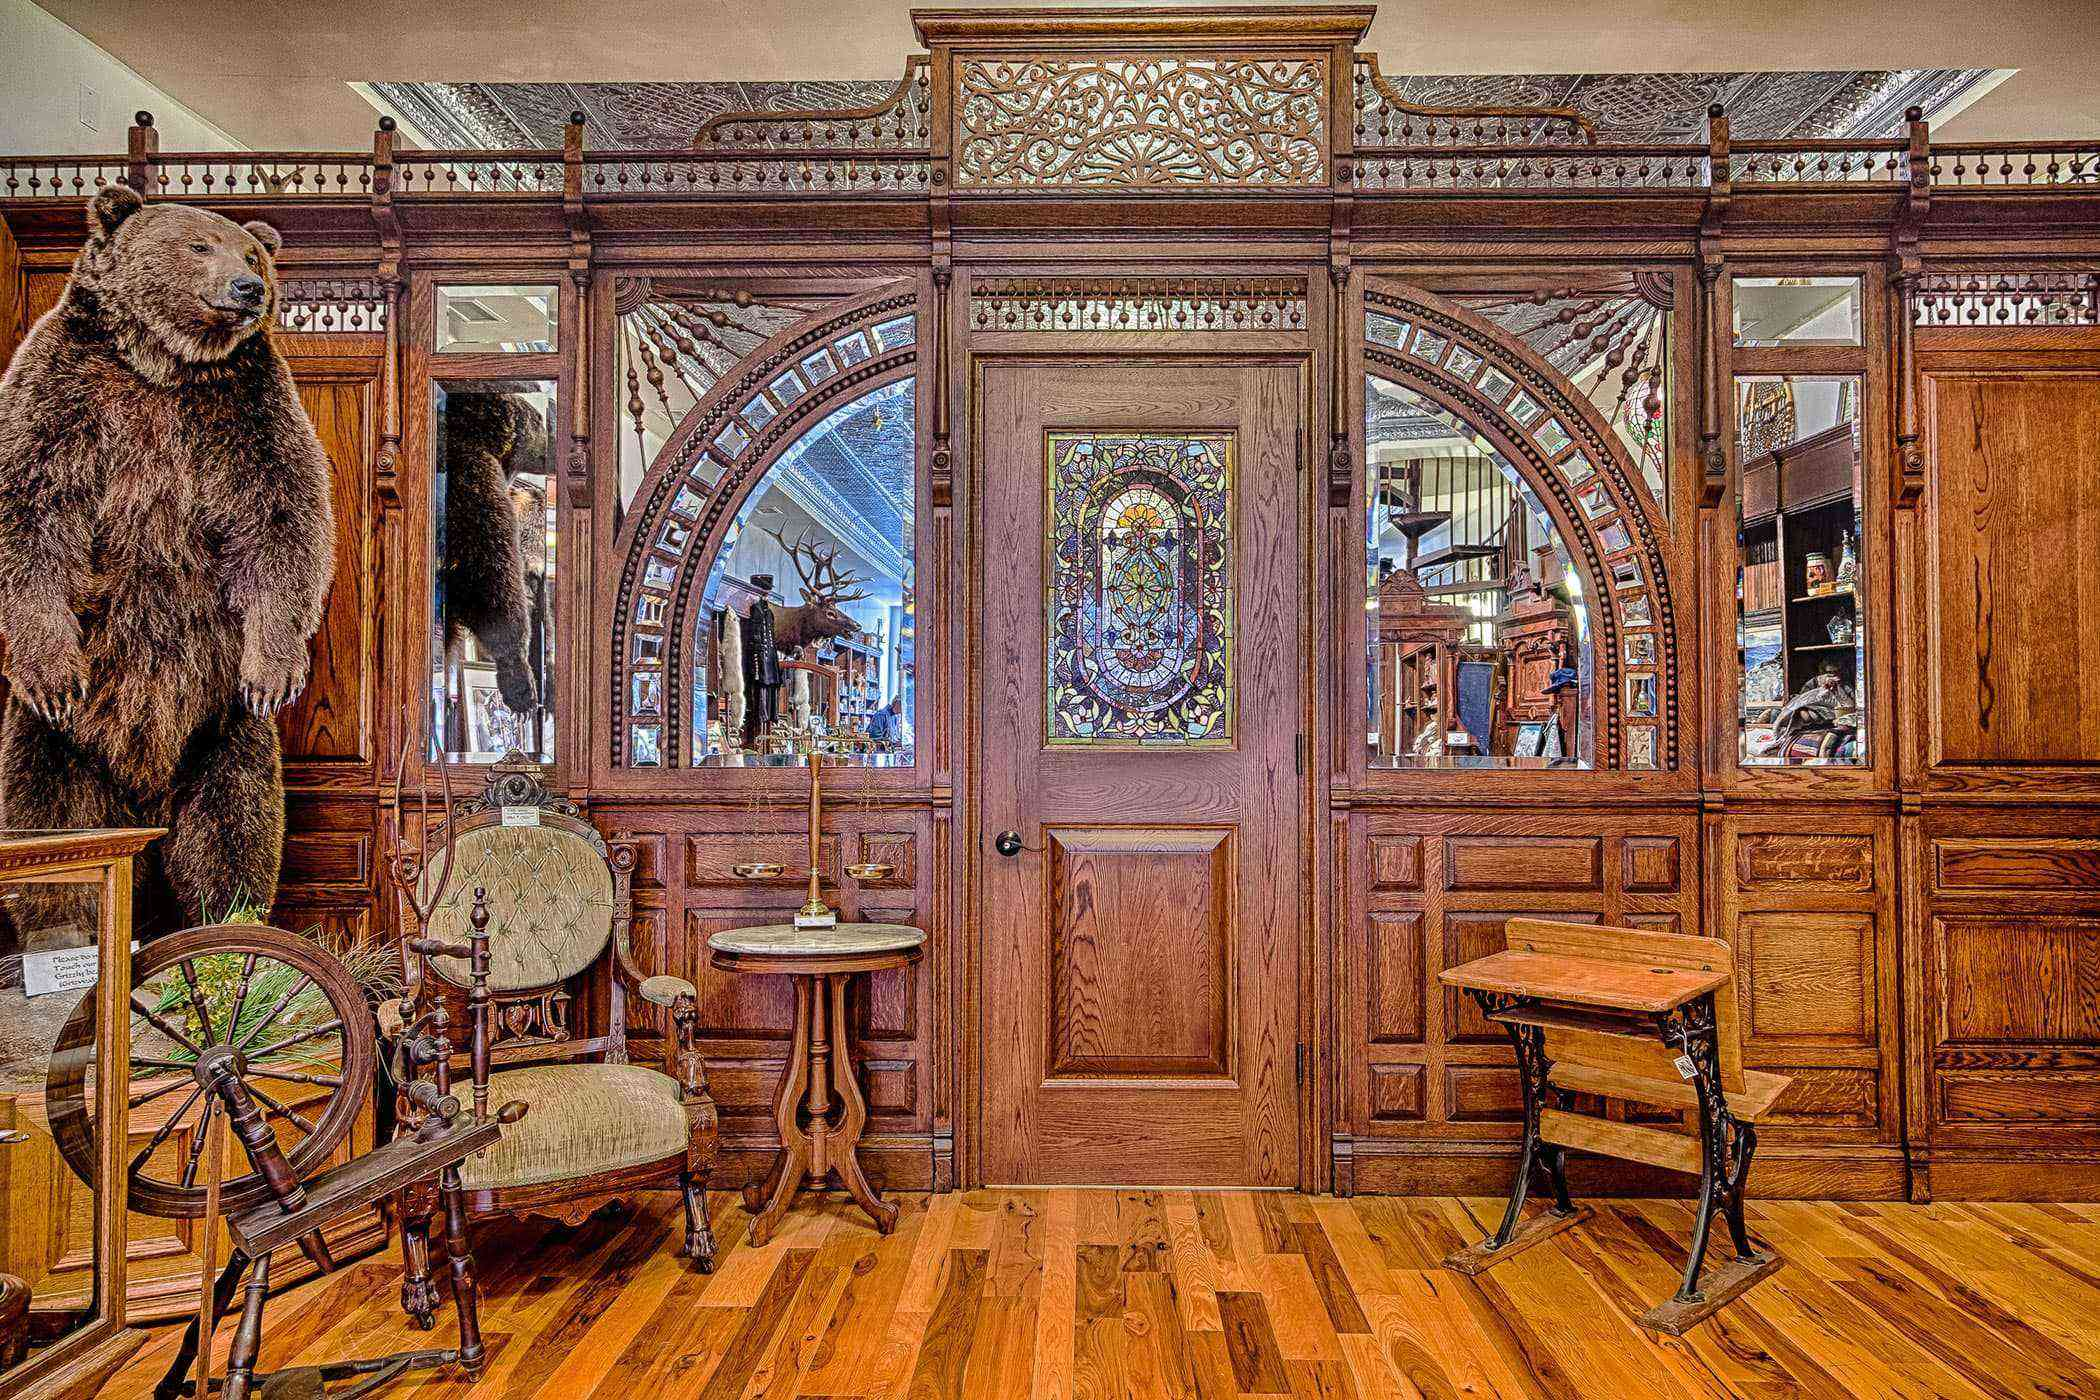 Quirky-Southwest-Museums-Ouray-Alchemist-1